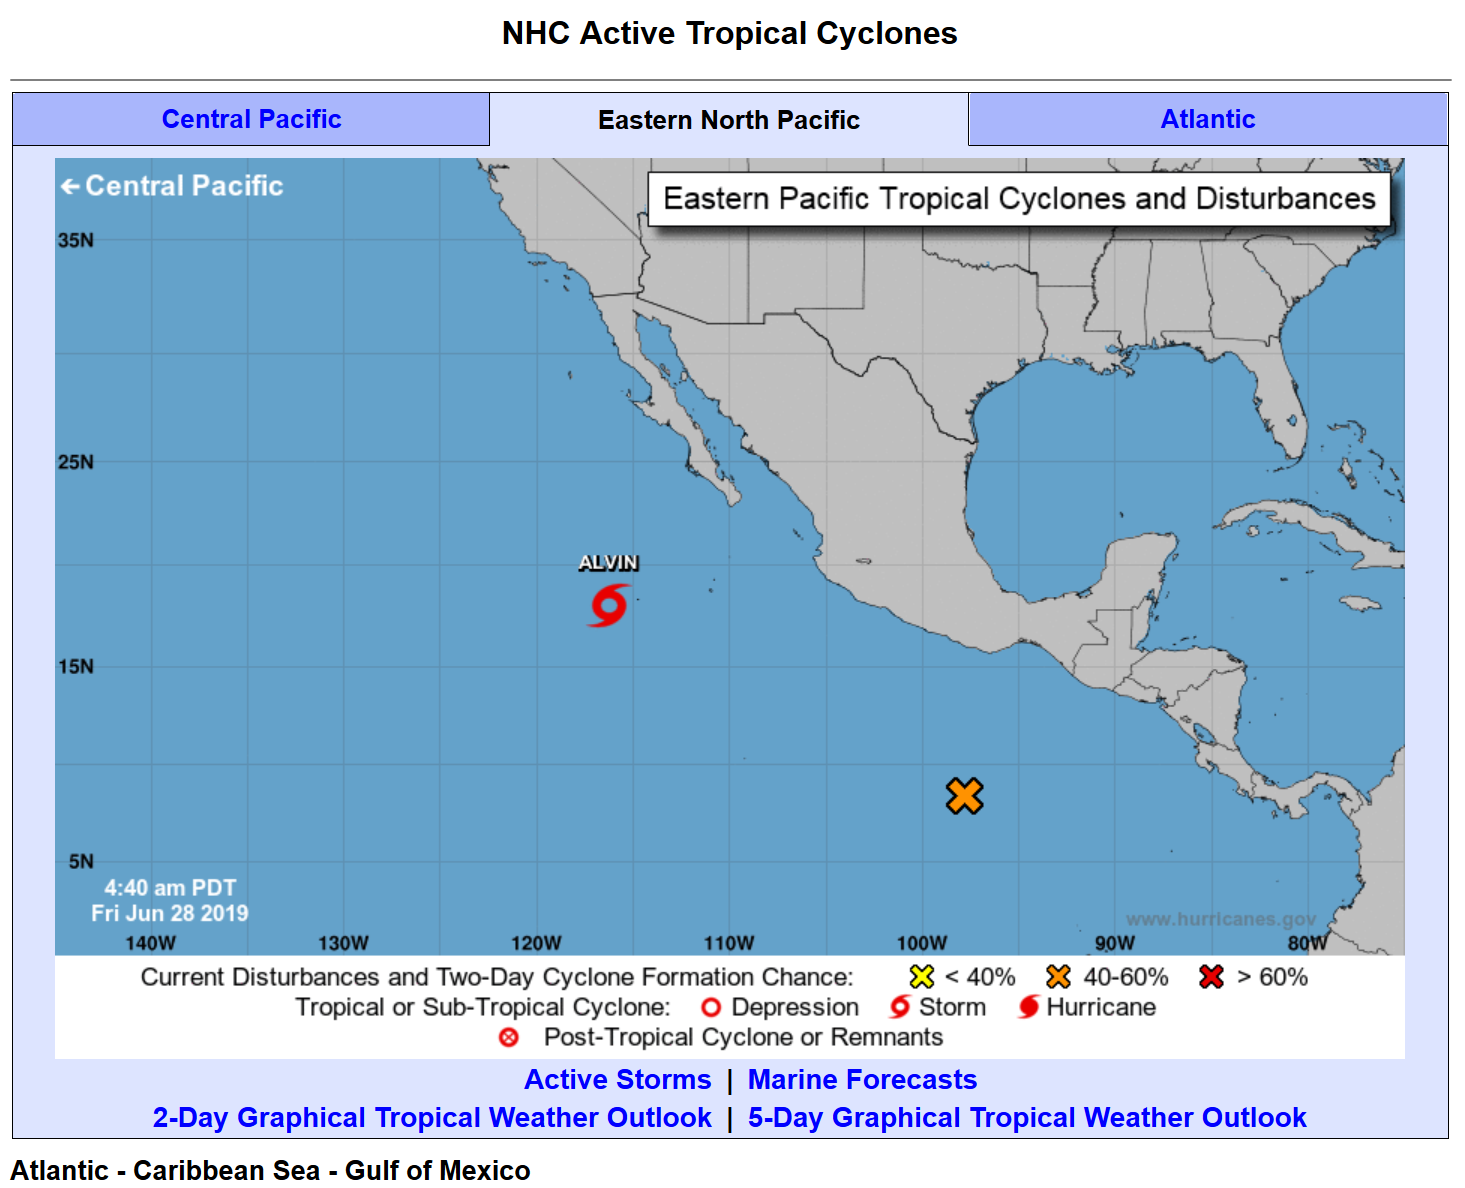 Hurricane Barbara Grows into Major Storm over Open Pacific ... on map to belize, map to california, map to greenland, map to panama, map to central america, map to bahamas, map to asia, map to costa rica, map to brazil, map to argentina, map to pacific ocean, map to jamaica, map to africa, map to alaska, map to disney world, map to aruba, map to bermuda, map to united states, map to everglades, map to el salvador,